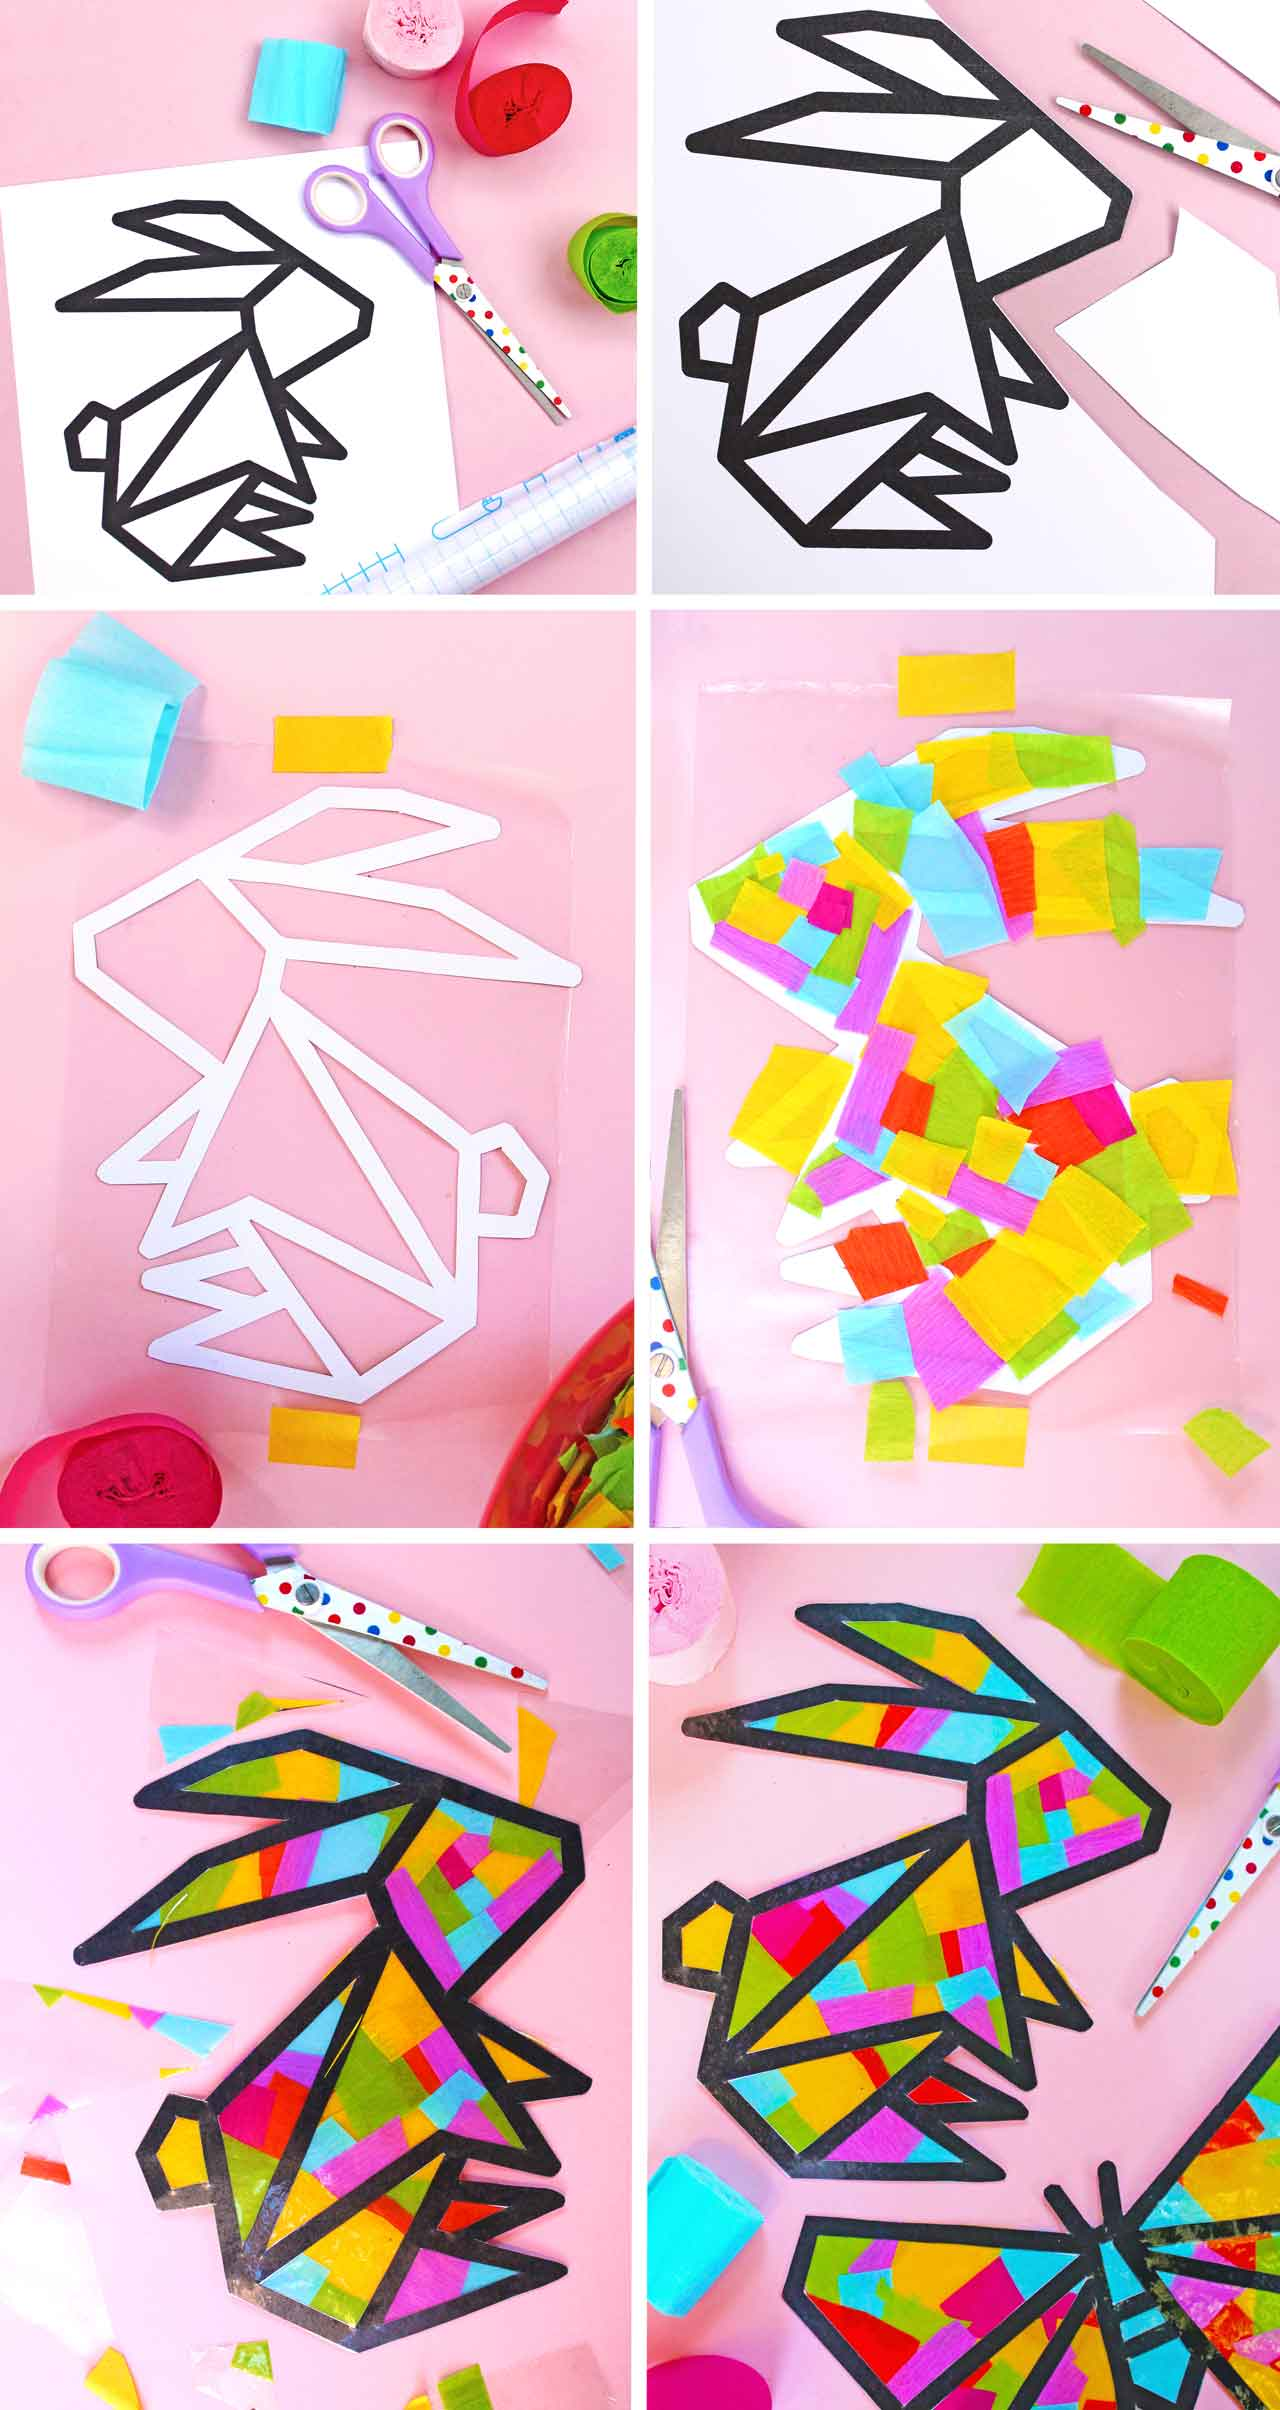 Springtime Sun catcher Easter bunny design step-by-step photo instructions